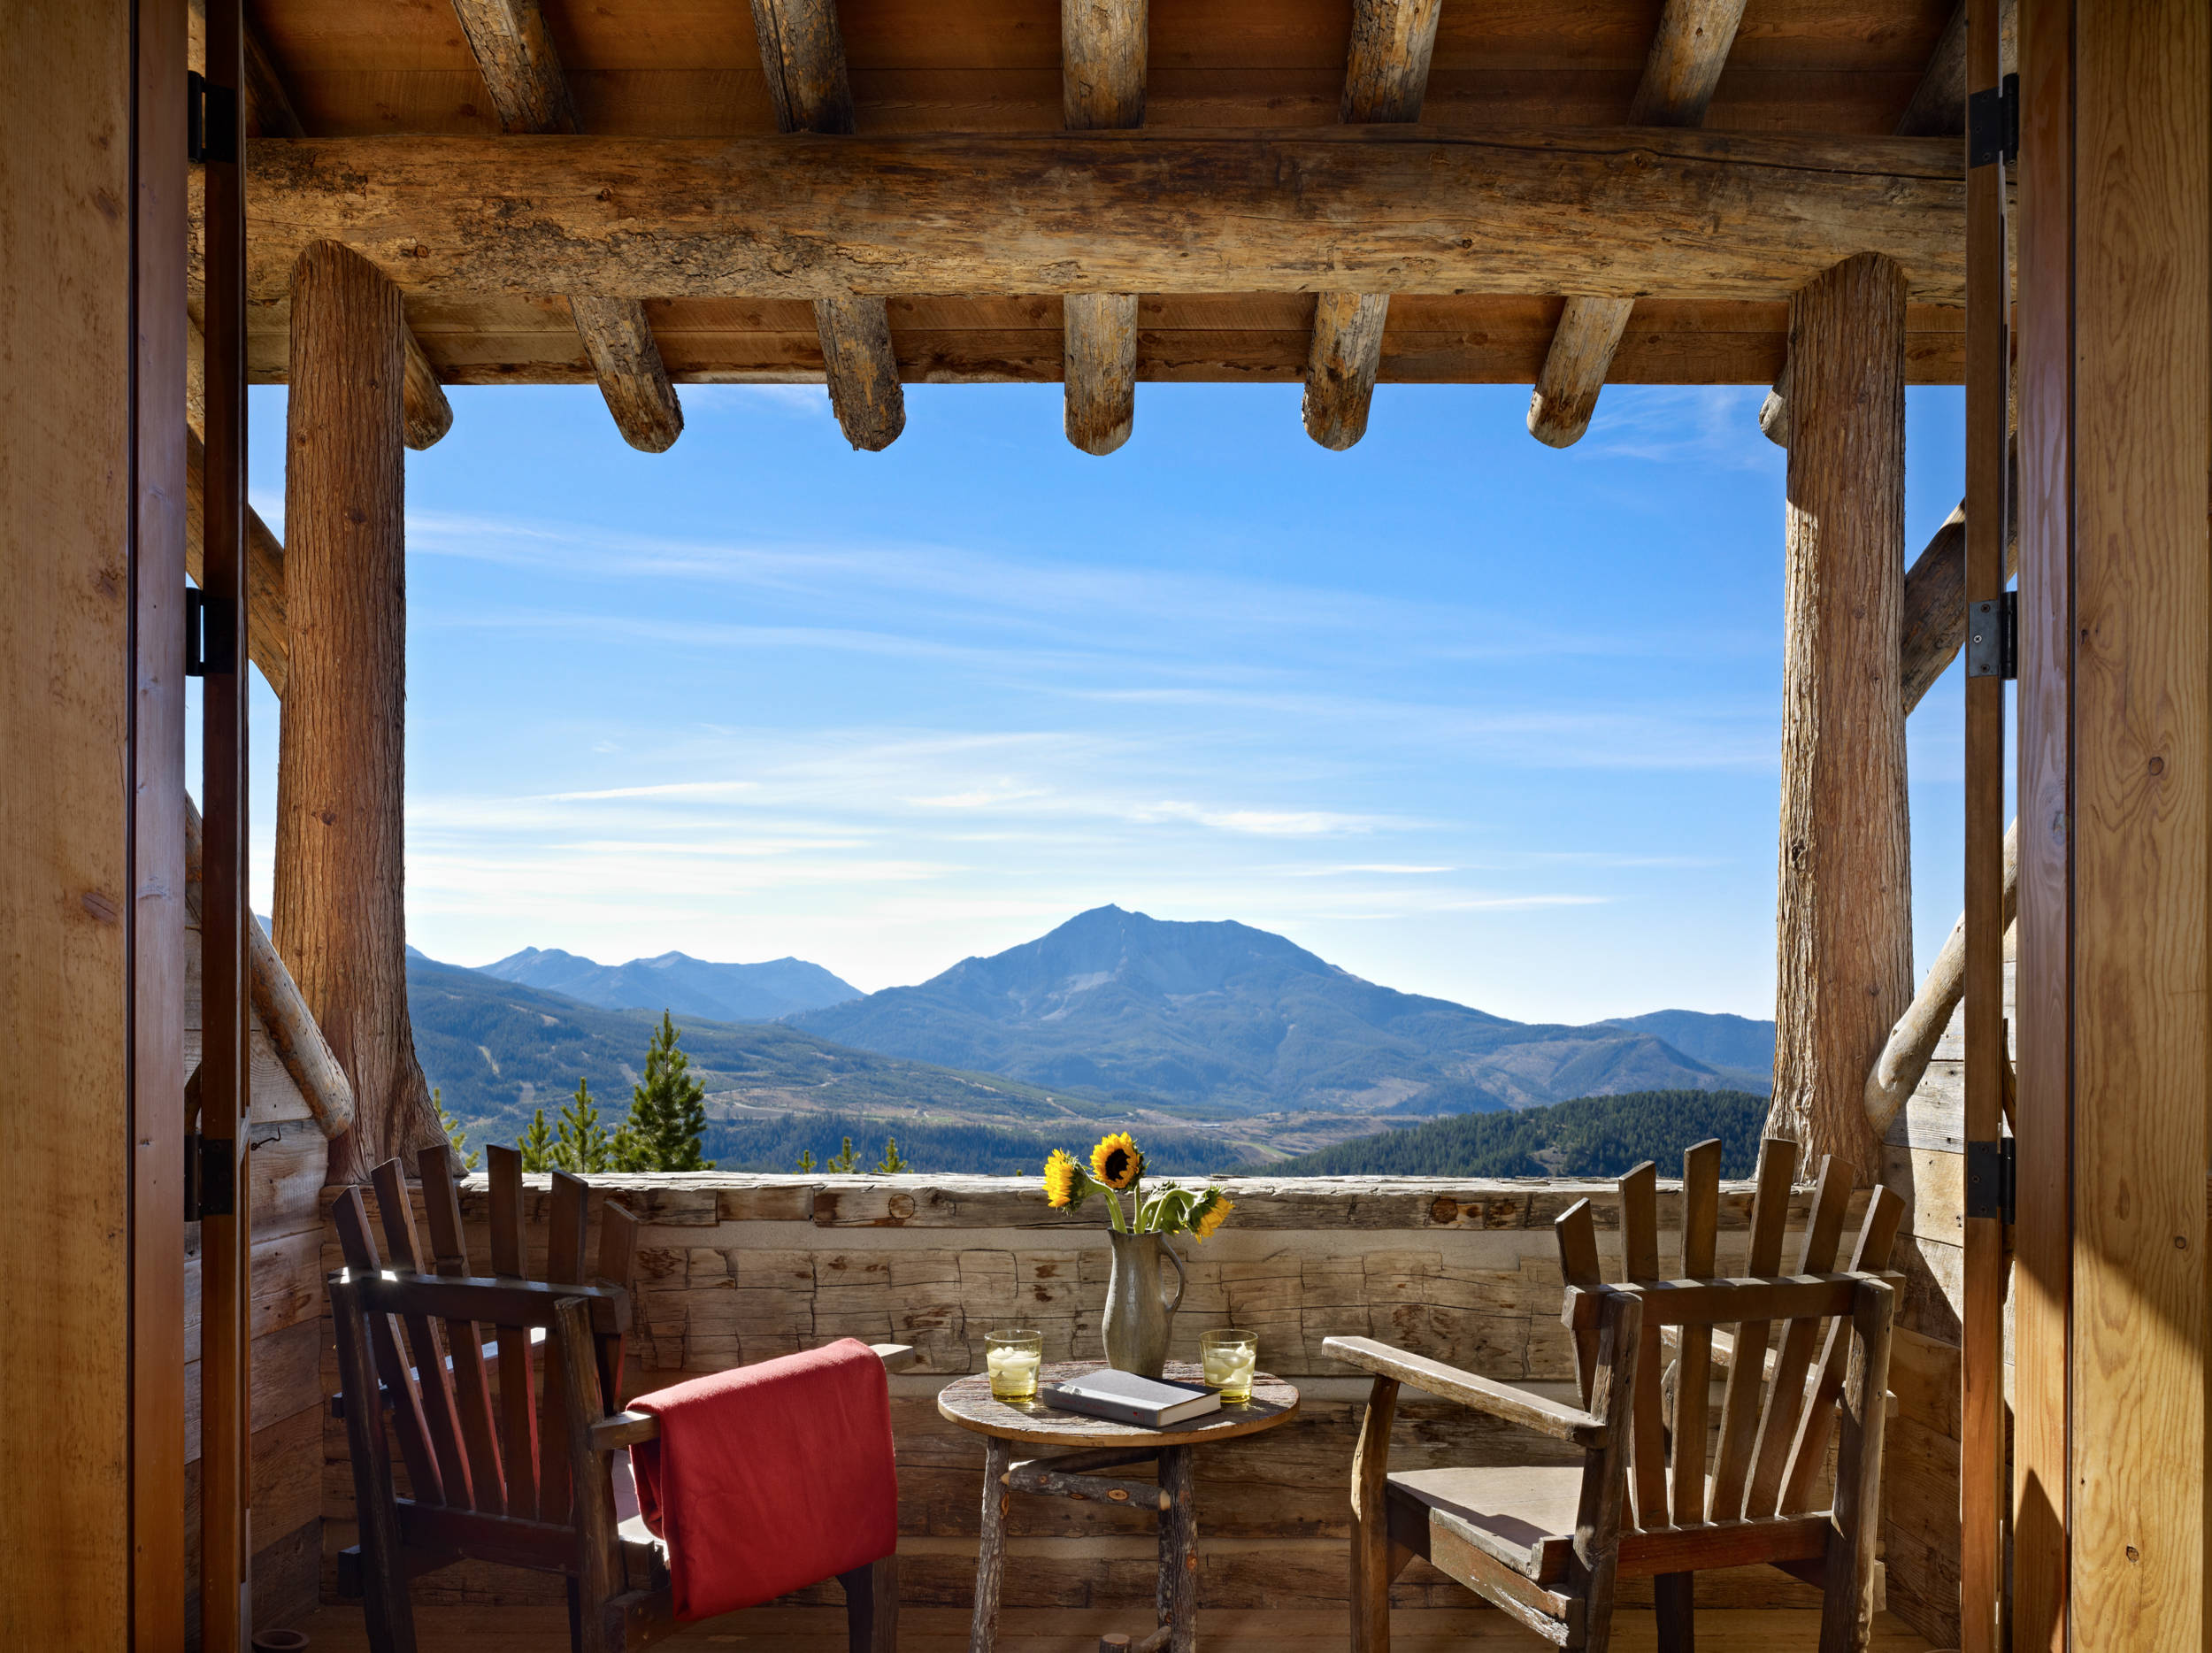 15-Breathtaking-Rustic-Balcony-Designs-With-Killer-Views-1 Ranch House Addition Designs on ranch renovation designs, ranch building designs, ranch addition plans, ranch house with pool design, ranch house extensions, cottage addition designs, ranch house expansion ideas, ranch style house additions, ranch style house plans with porches, ranch house before and after, ranch with farmers porch design, barn addition designs, ranch patio designs,